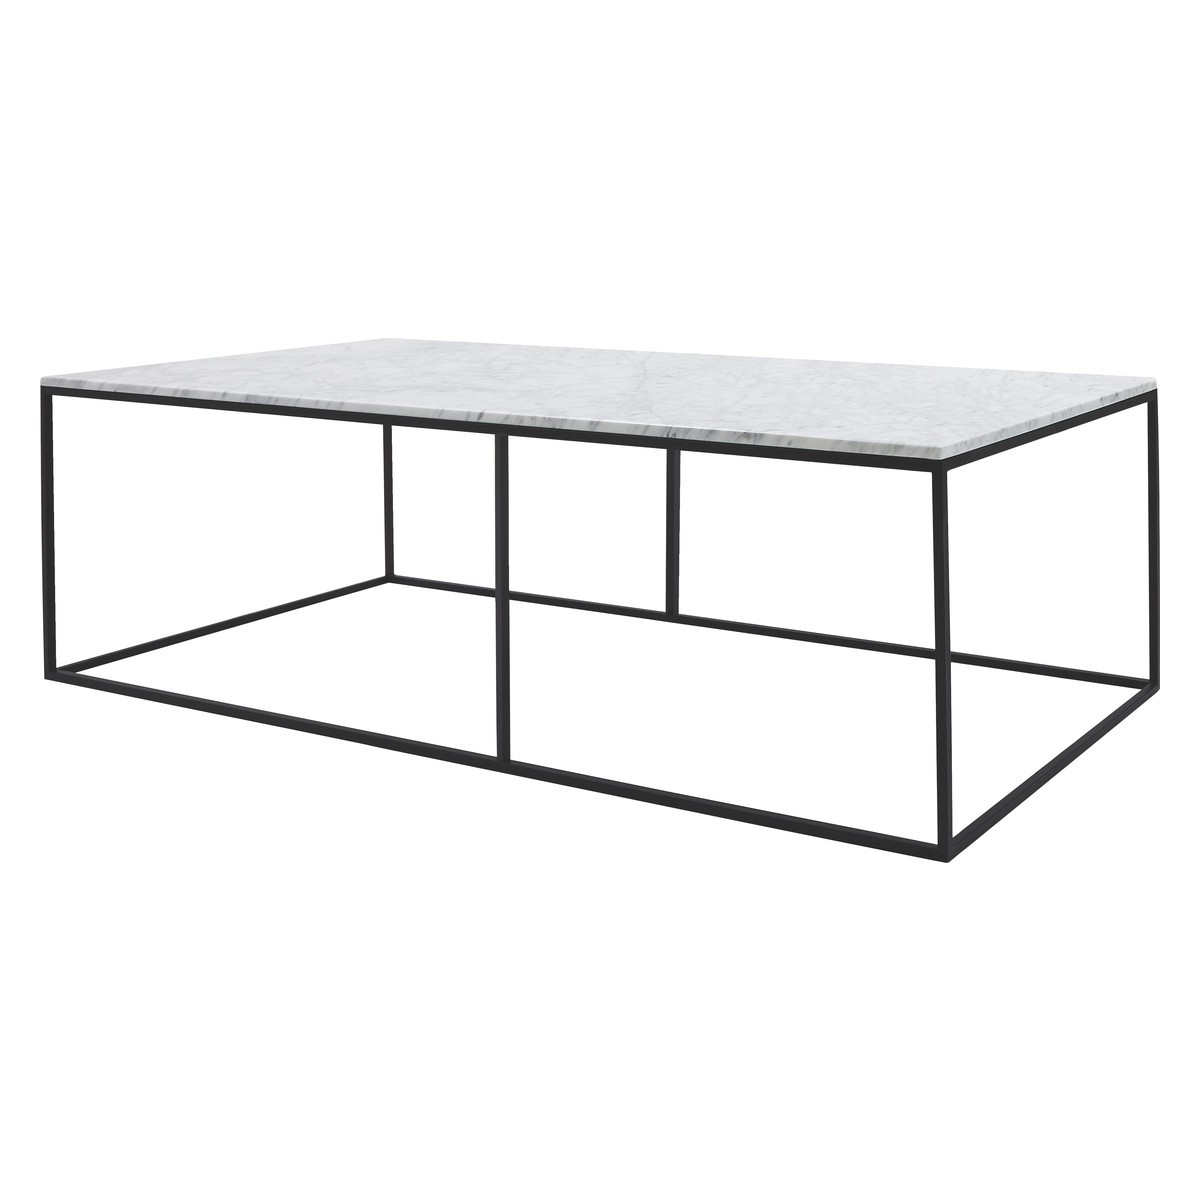 Buy Now At Habitat Uk Inside Marble Coffee Tables (View 4 of 20)